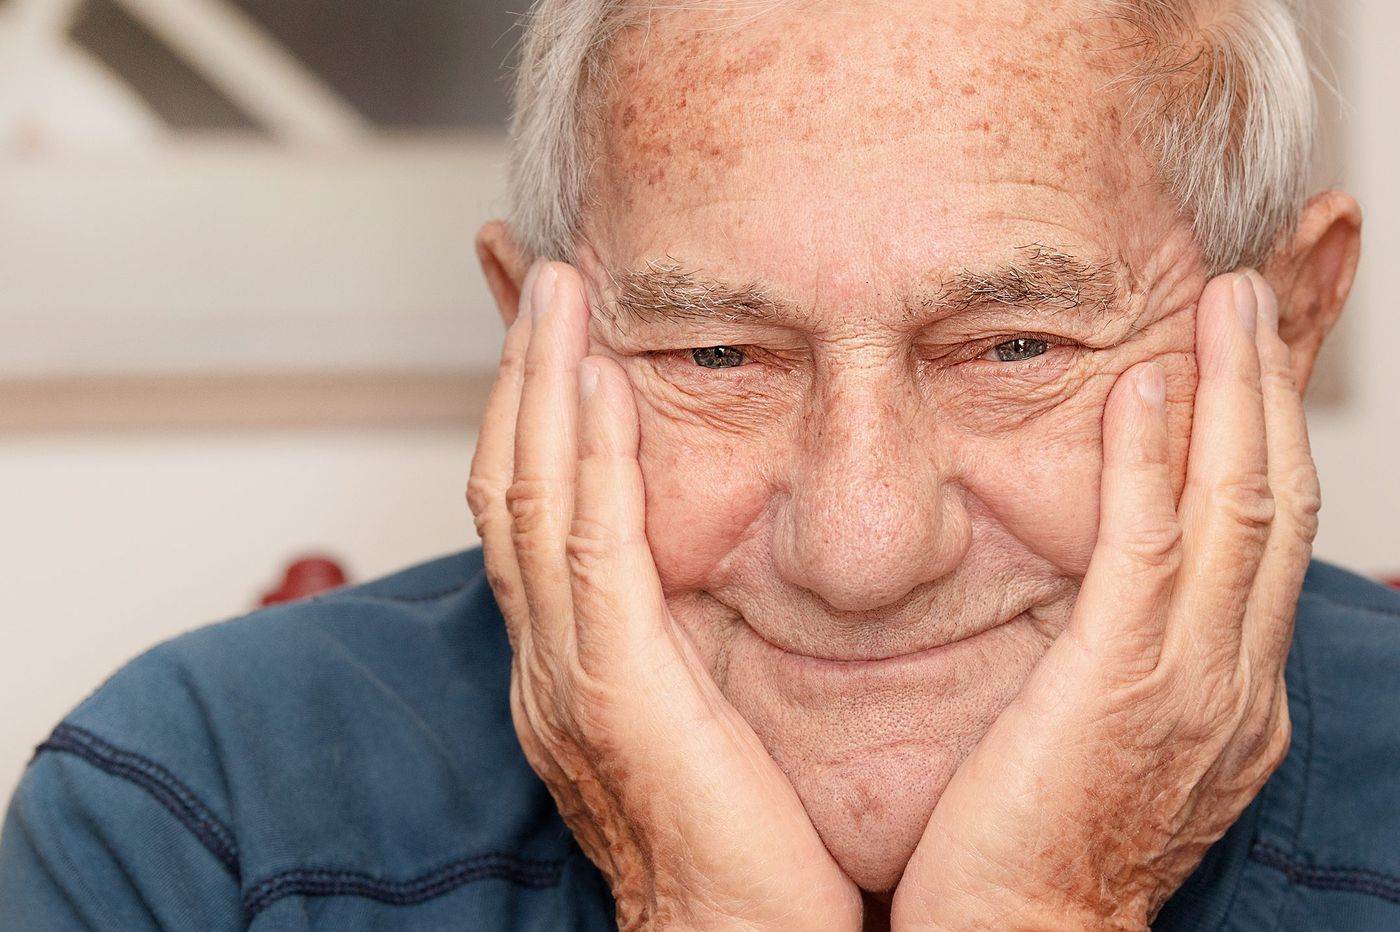 Have Medicare? The shingles vaccine will cost you.